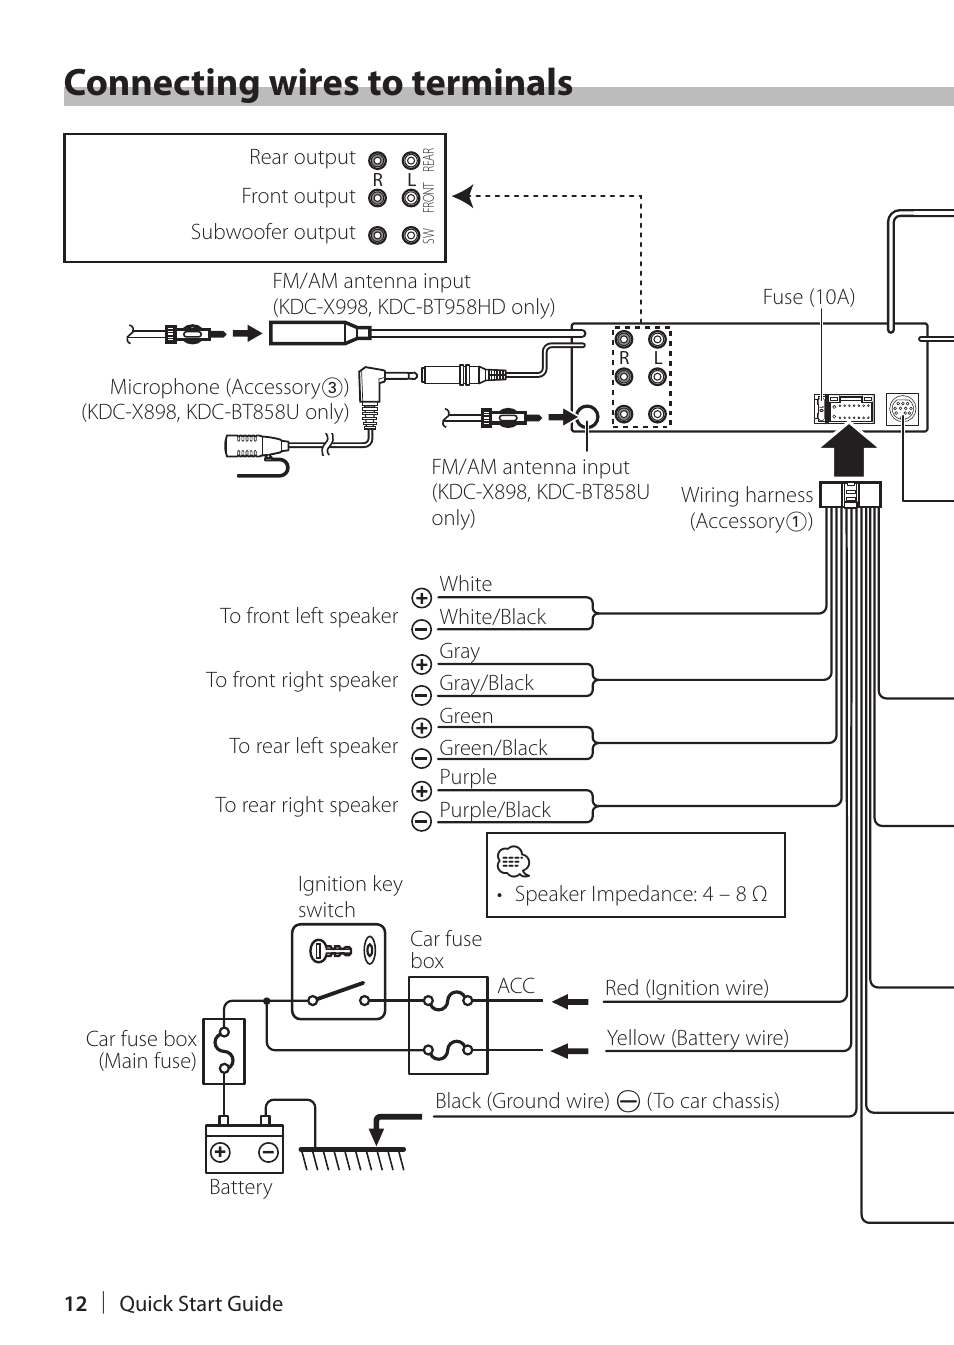 kenwood kdc x wiring diagram kenwood image connecting wires to terminals kenwood kdc x898 user manual on kenwood kdc x998 wiring diagram